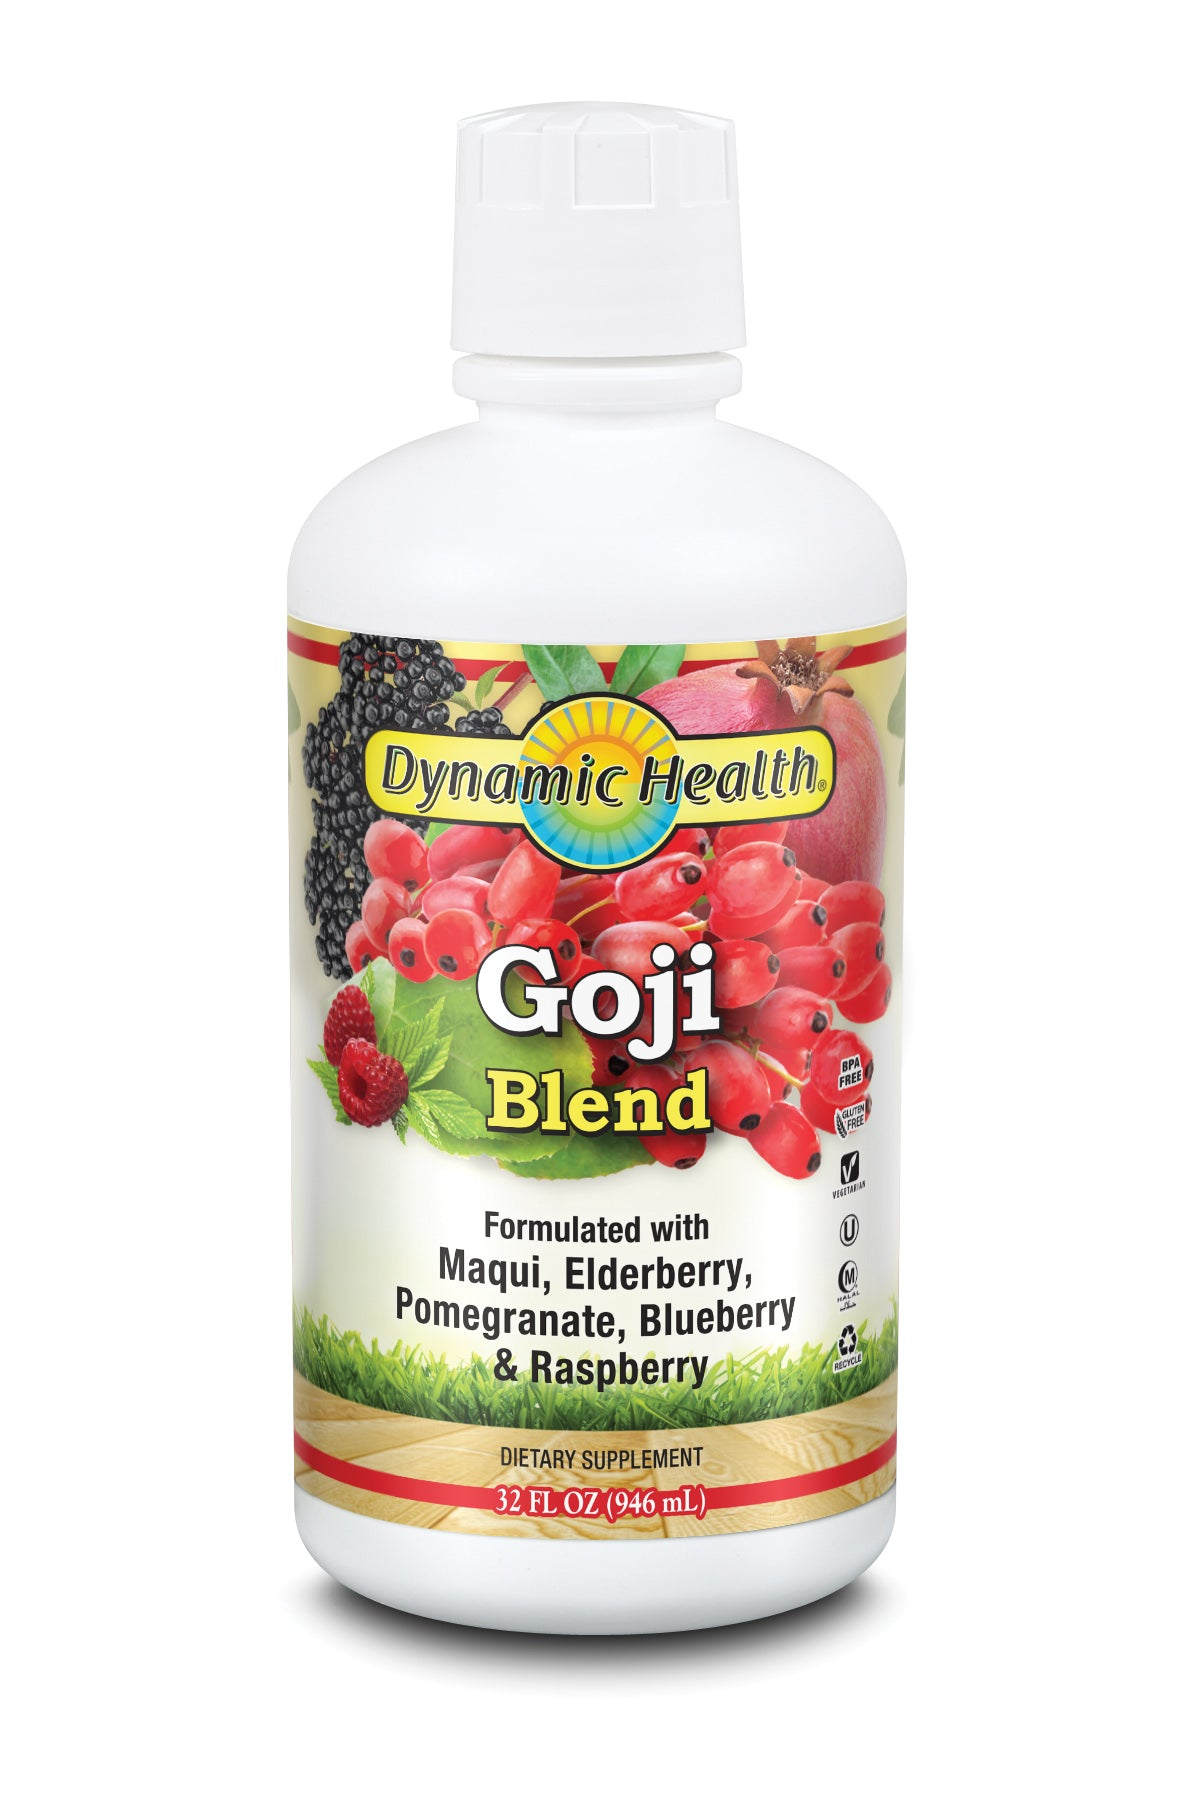 Goji Juice Blend - 32-Fl-Oz-(946-mL)